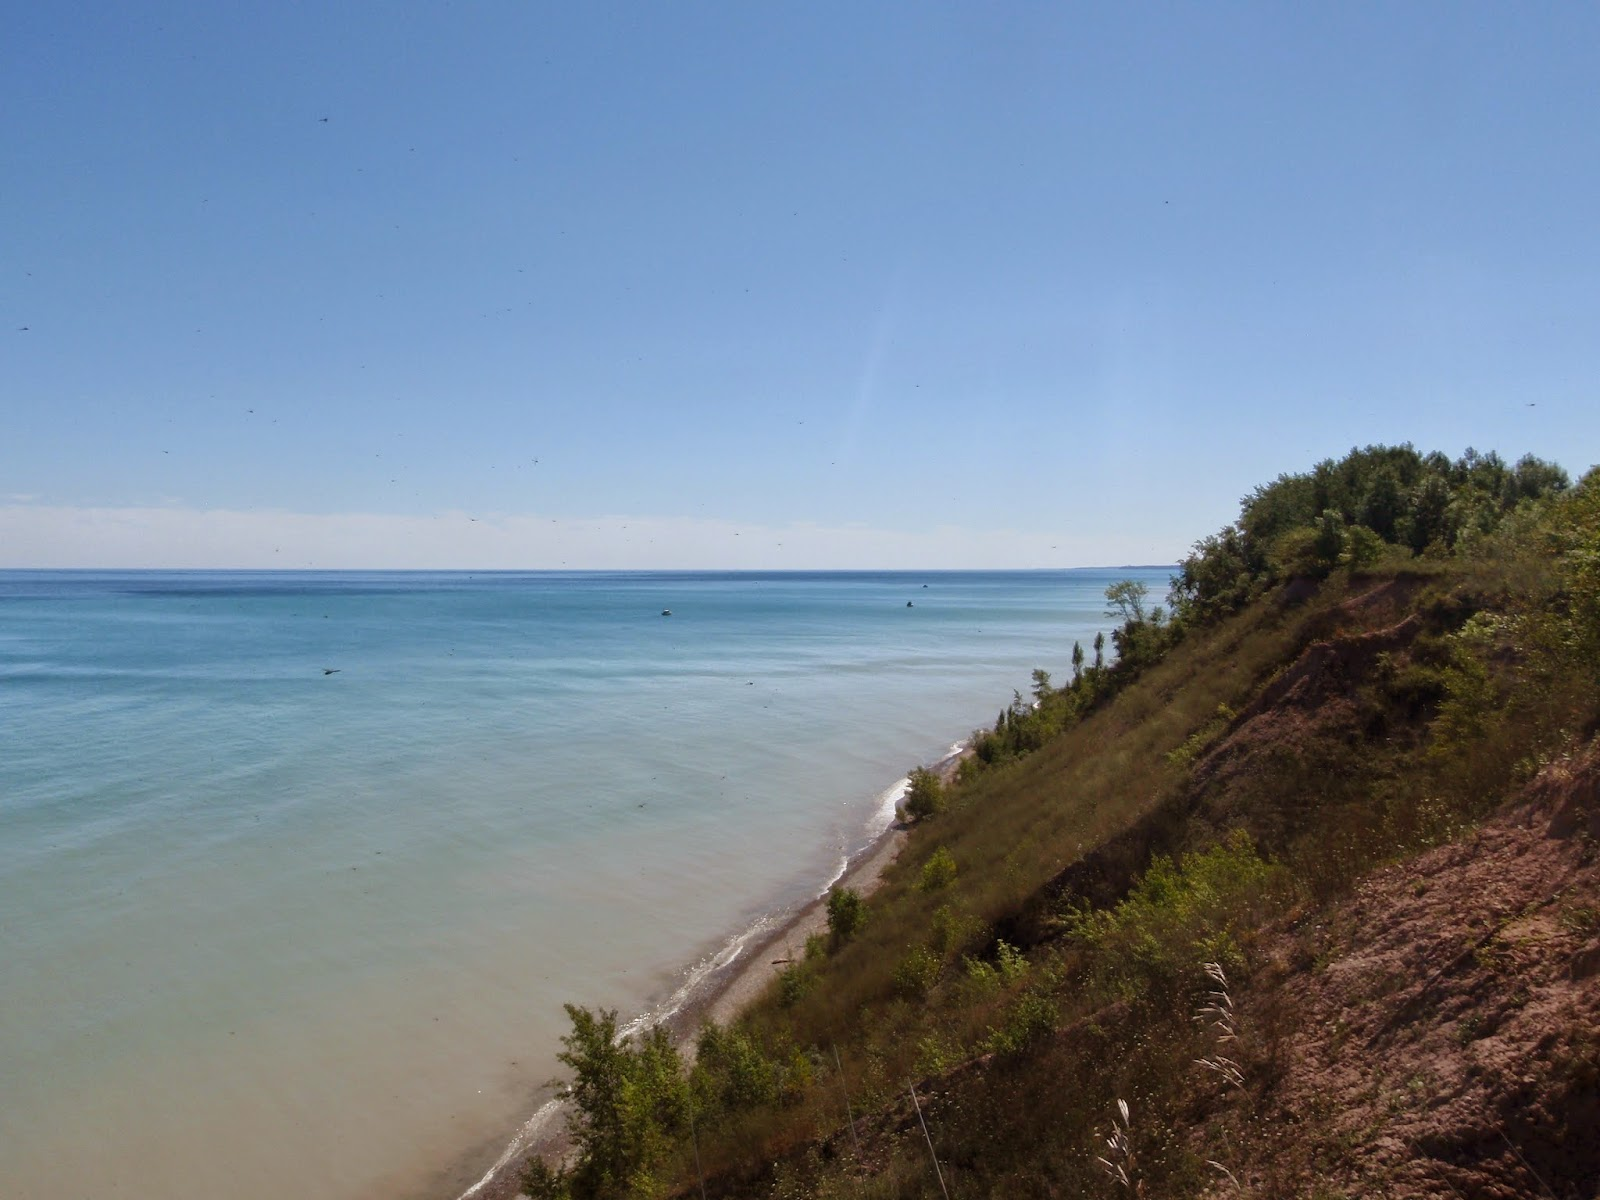 Bluff Trail and a view of the bluff line along Lake Michigan at  Lion's Den Gorge Nature Preserve